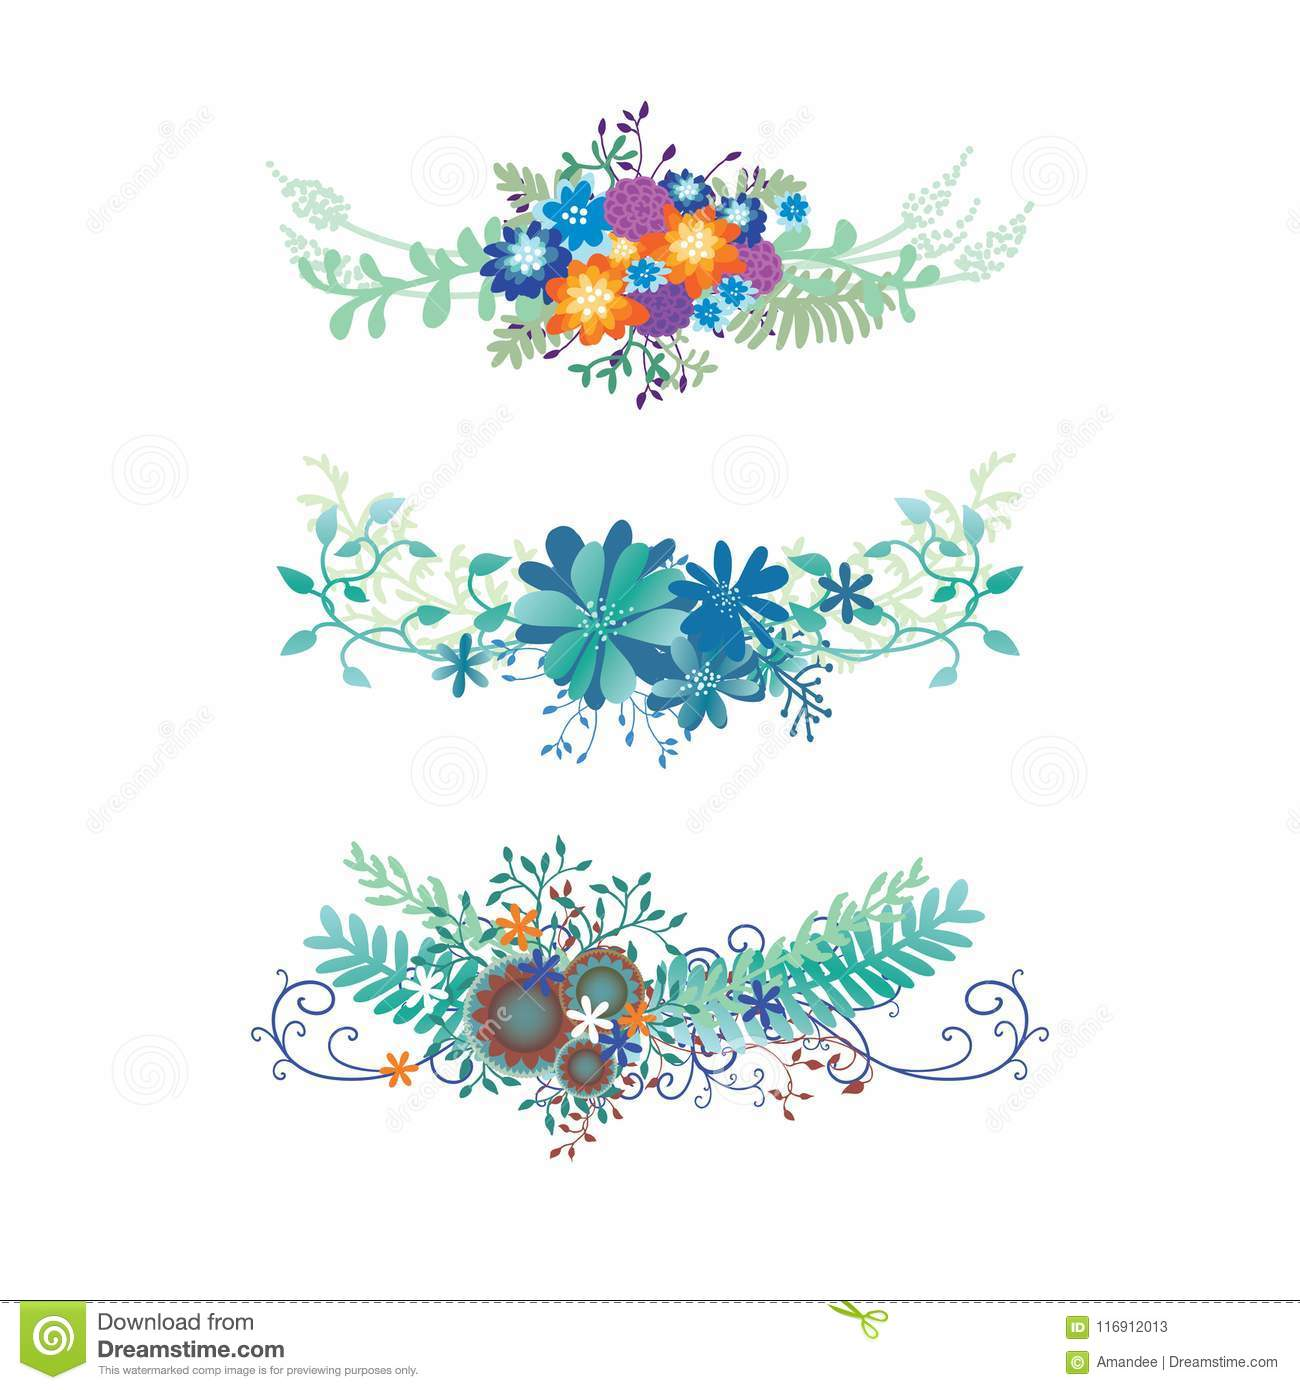 Flower Border Vector With Ivy Vines Ferns And Curl Flourishes In A